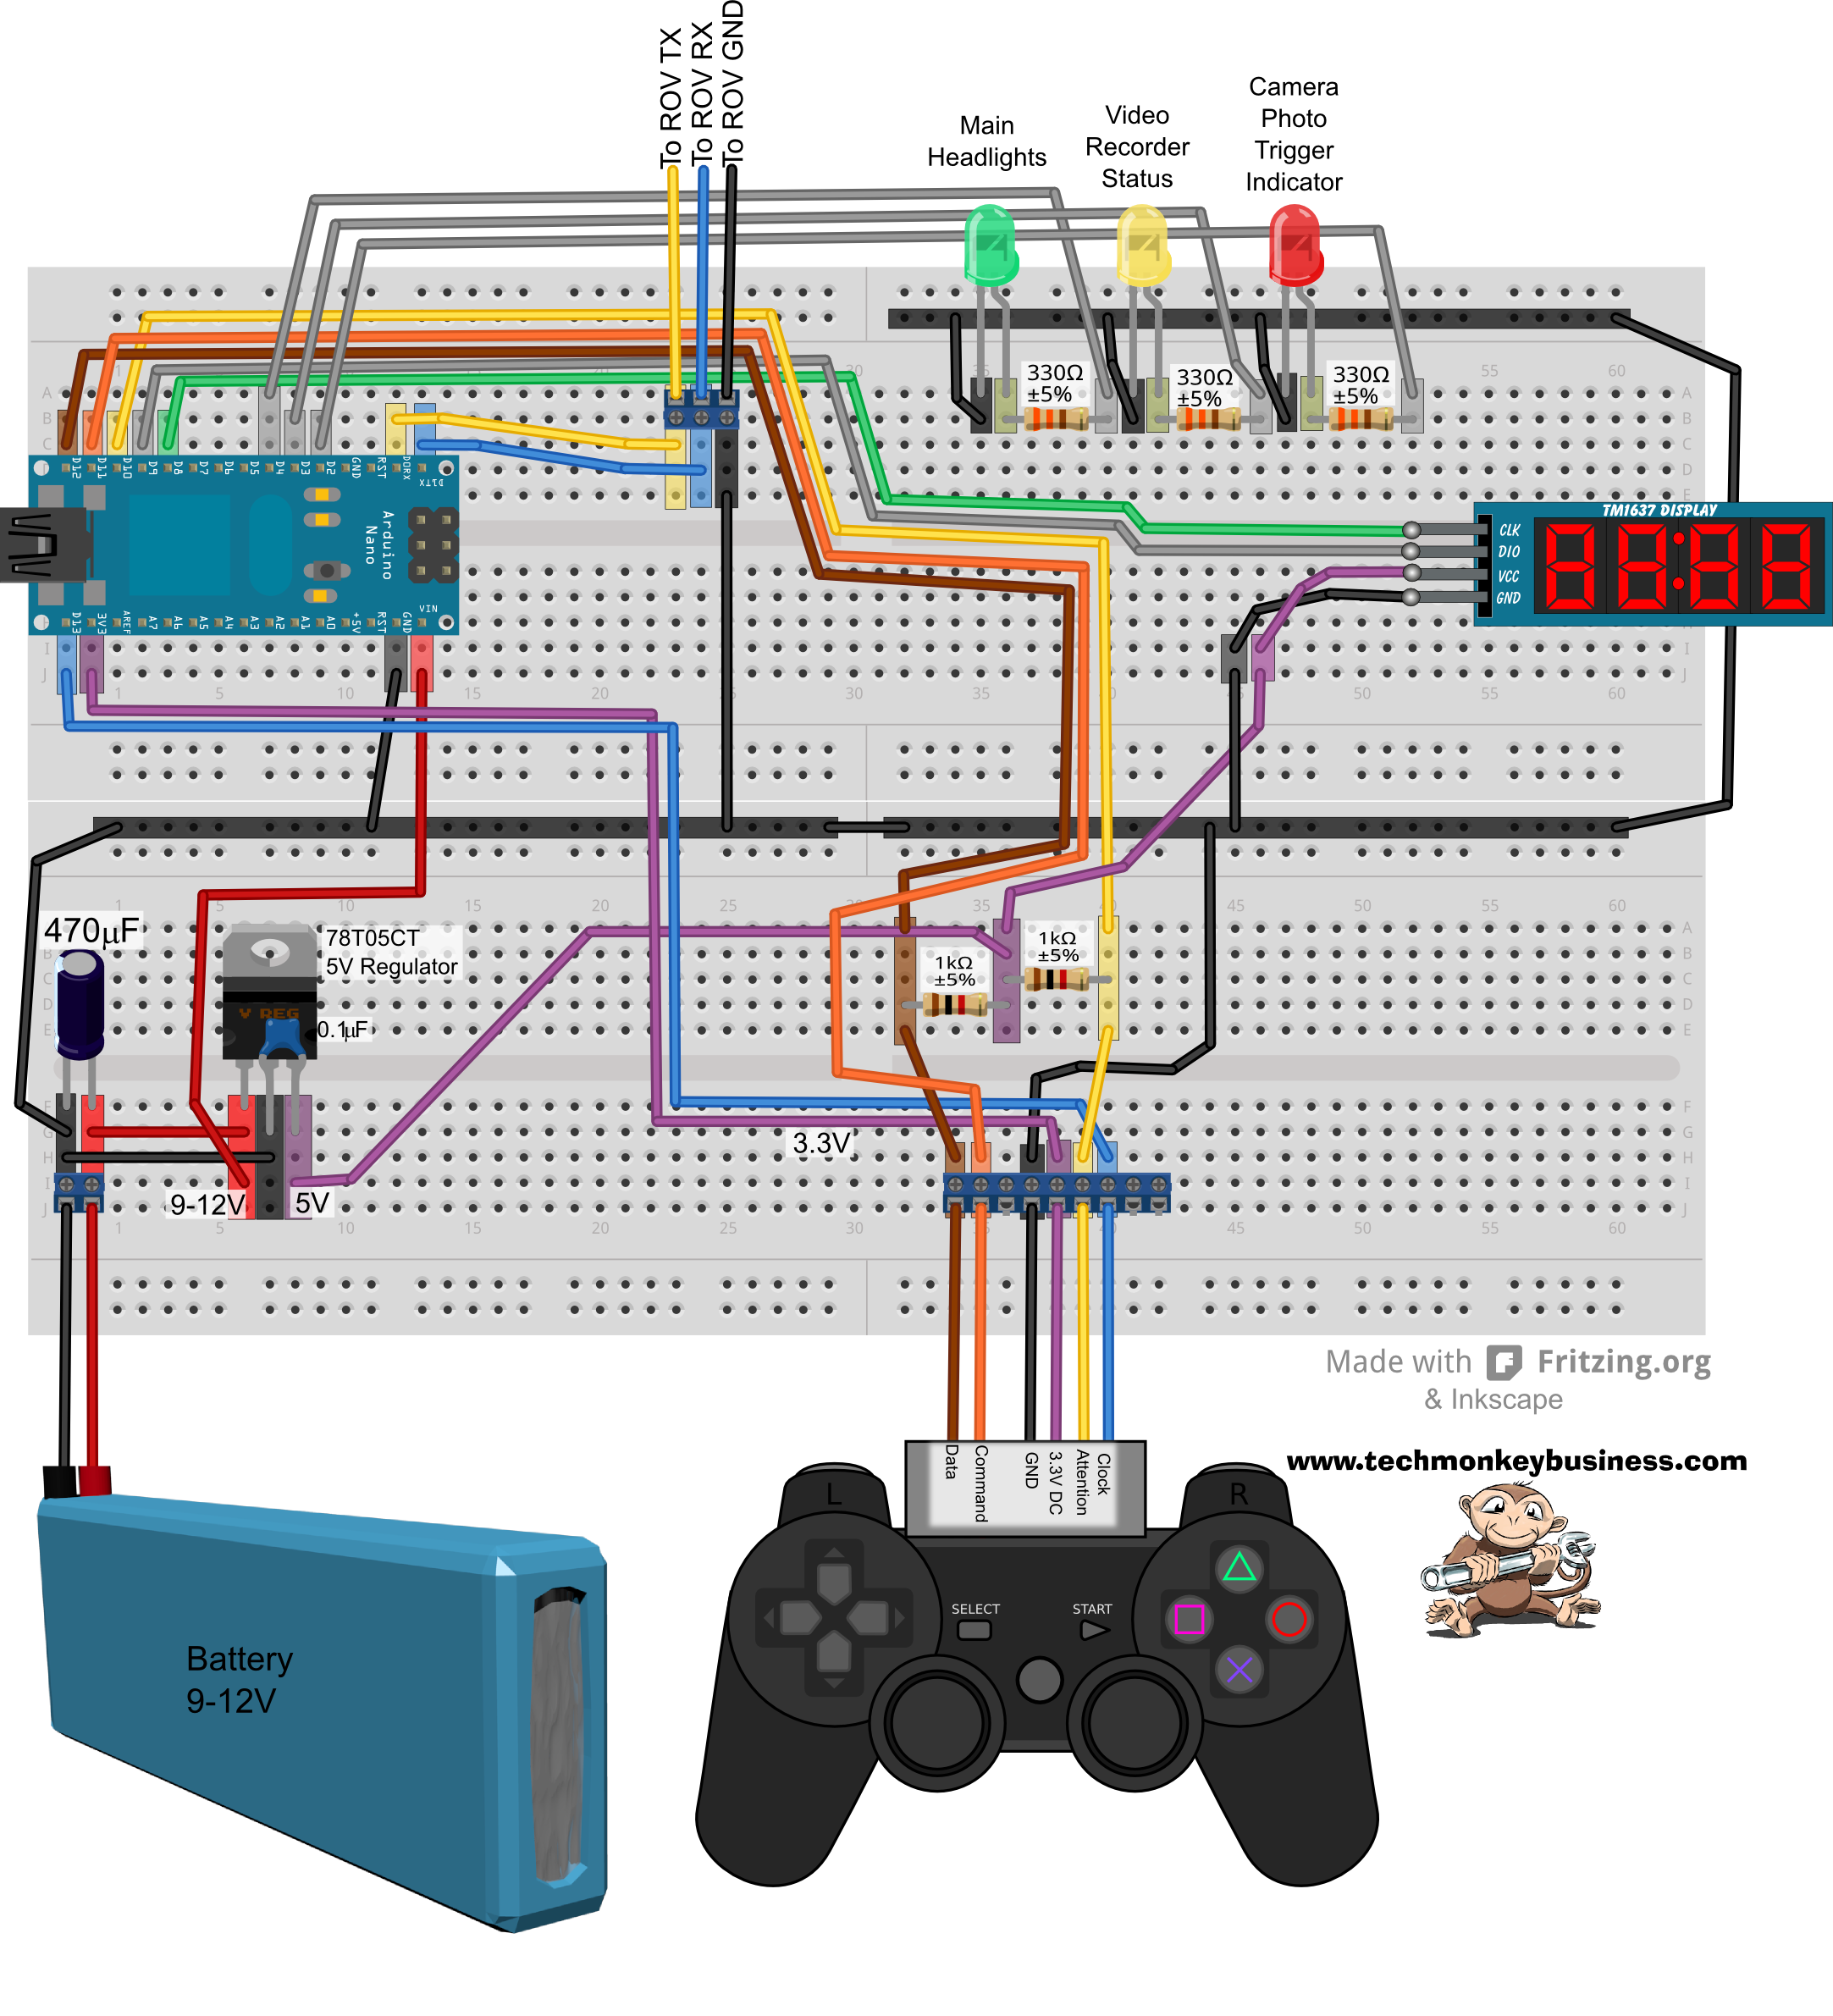 Rov wiring diagram images